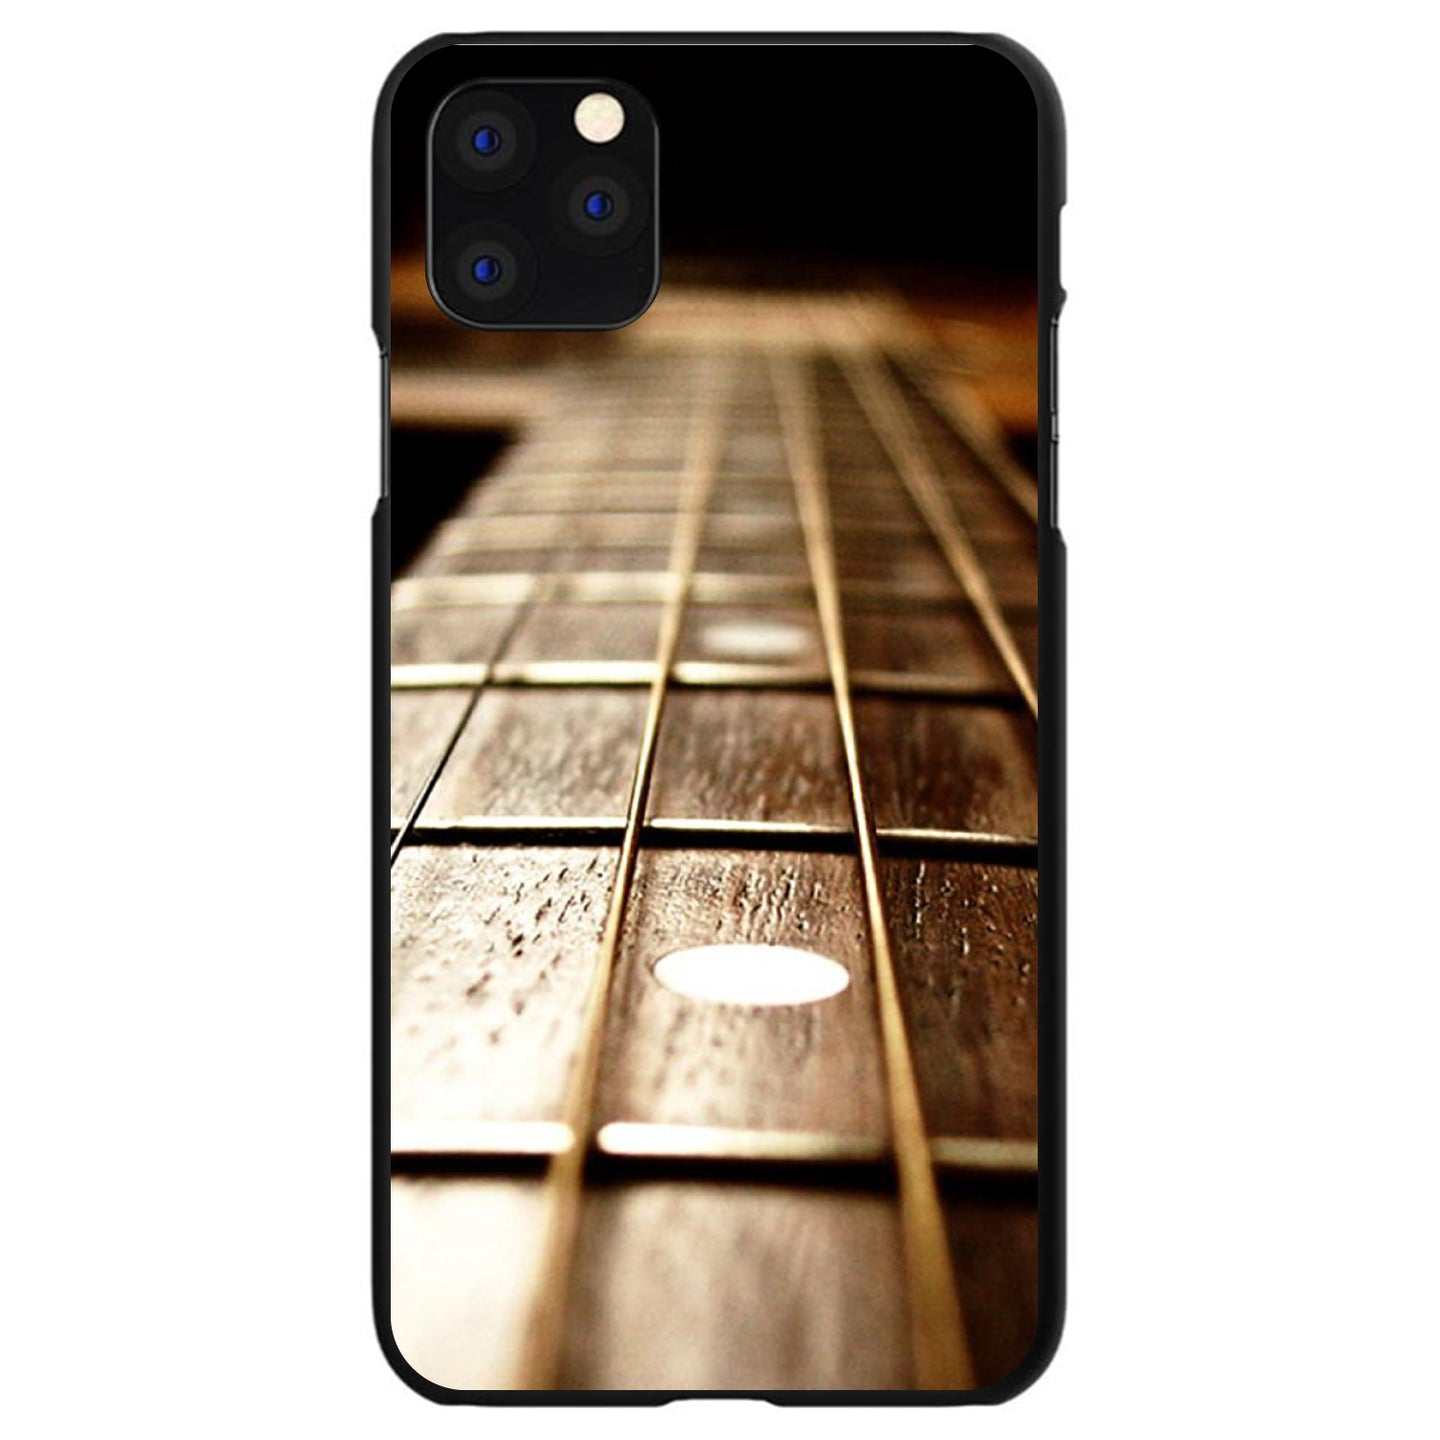 DistinctInk® Hard Plastic Snap-On Case for Apple iPhone - Guitar Strings Neck